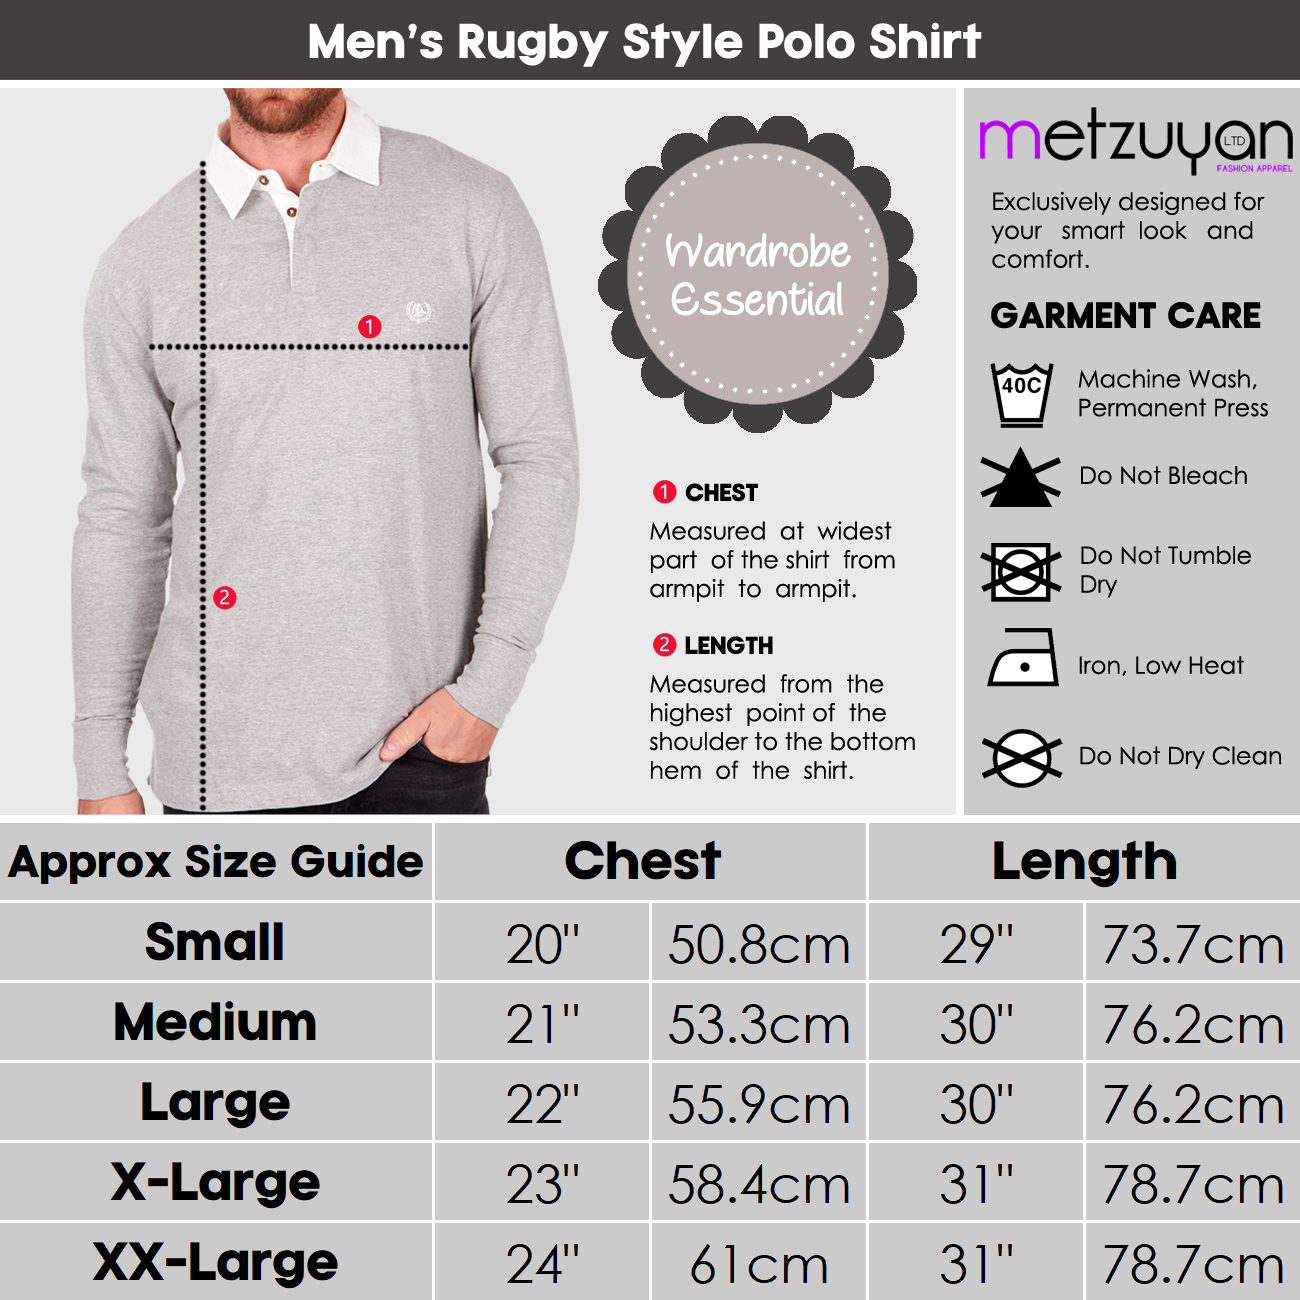 Mens-Rugby-Style-Polo-Shirt-Long-Sleeve-100-Cotton-Sports-Classic-Top-S-2XL thumbnail 7